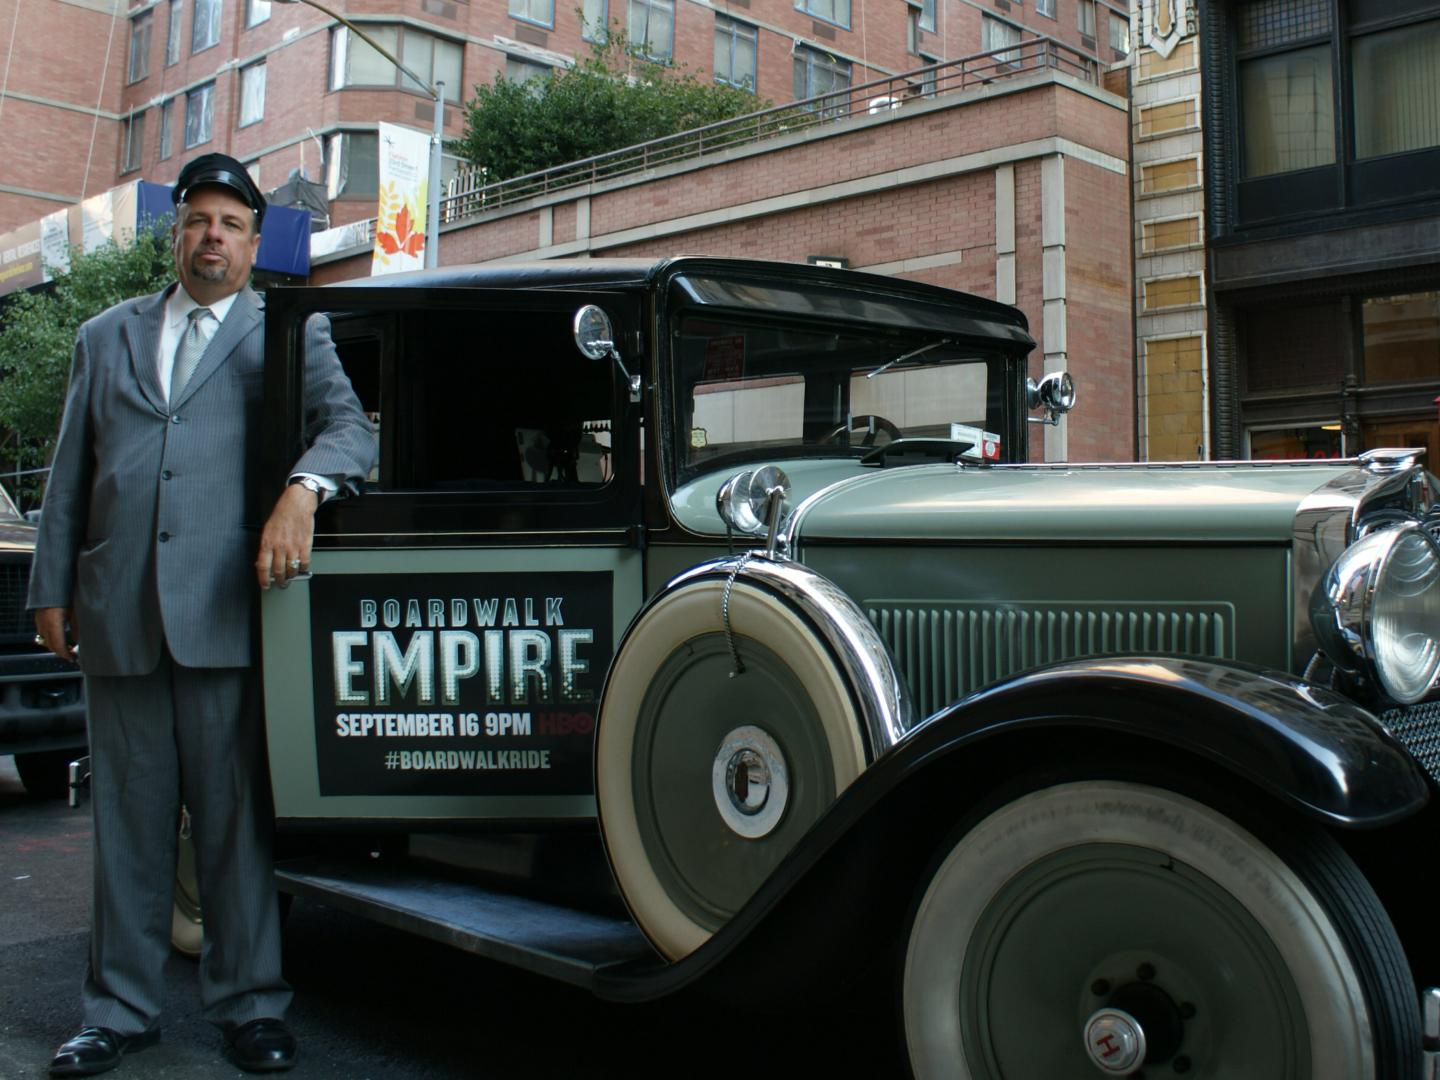 Boardwalk Empire/Uber Promotional Stunt Thumbnail